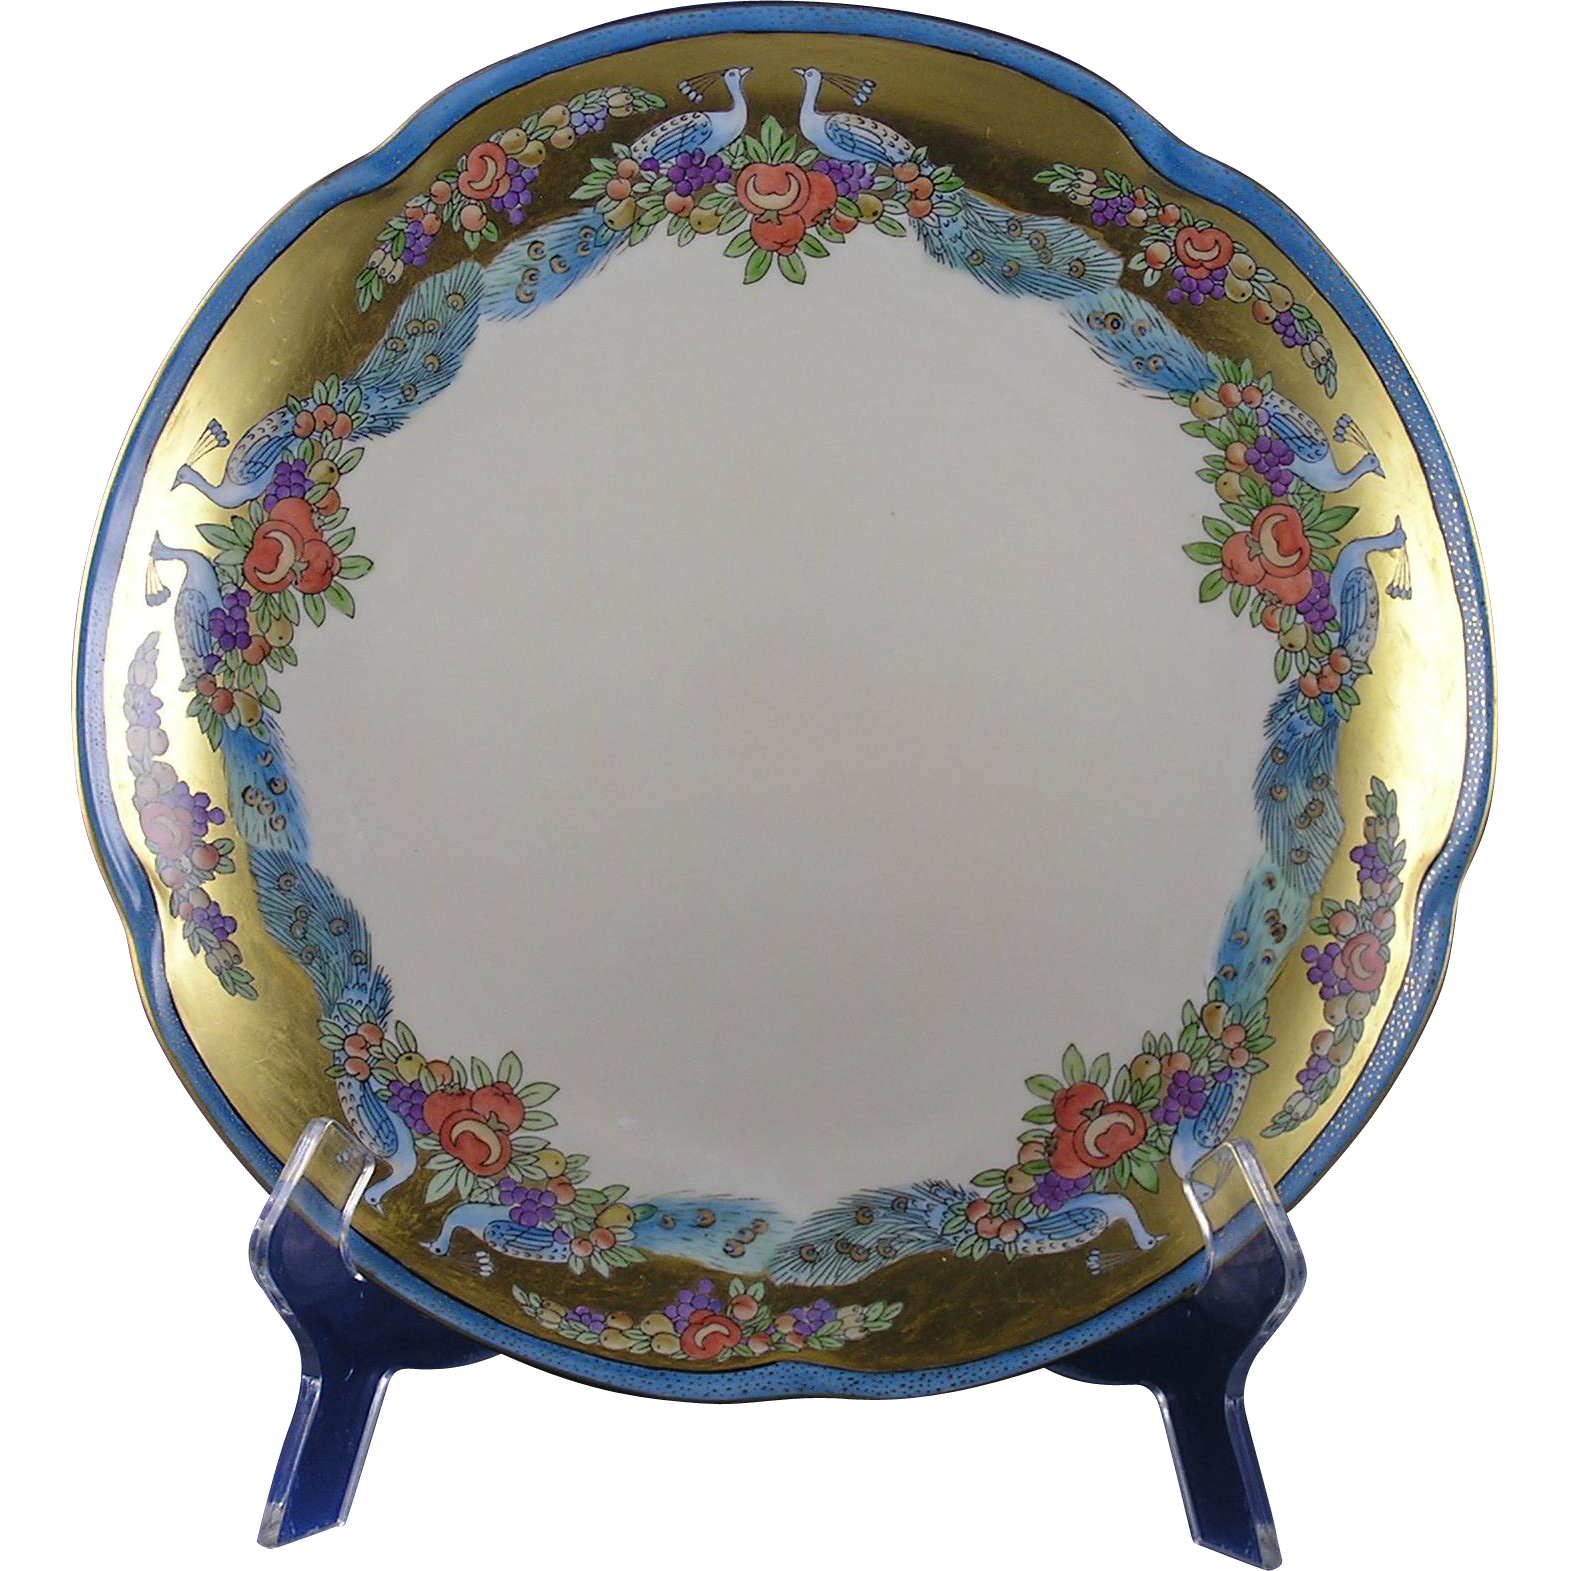 Jaeger & Co. (JC) Bavaria Peacock & Fruit Motif Plate/Charger (c.1902-1940)